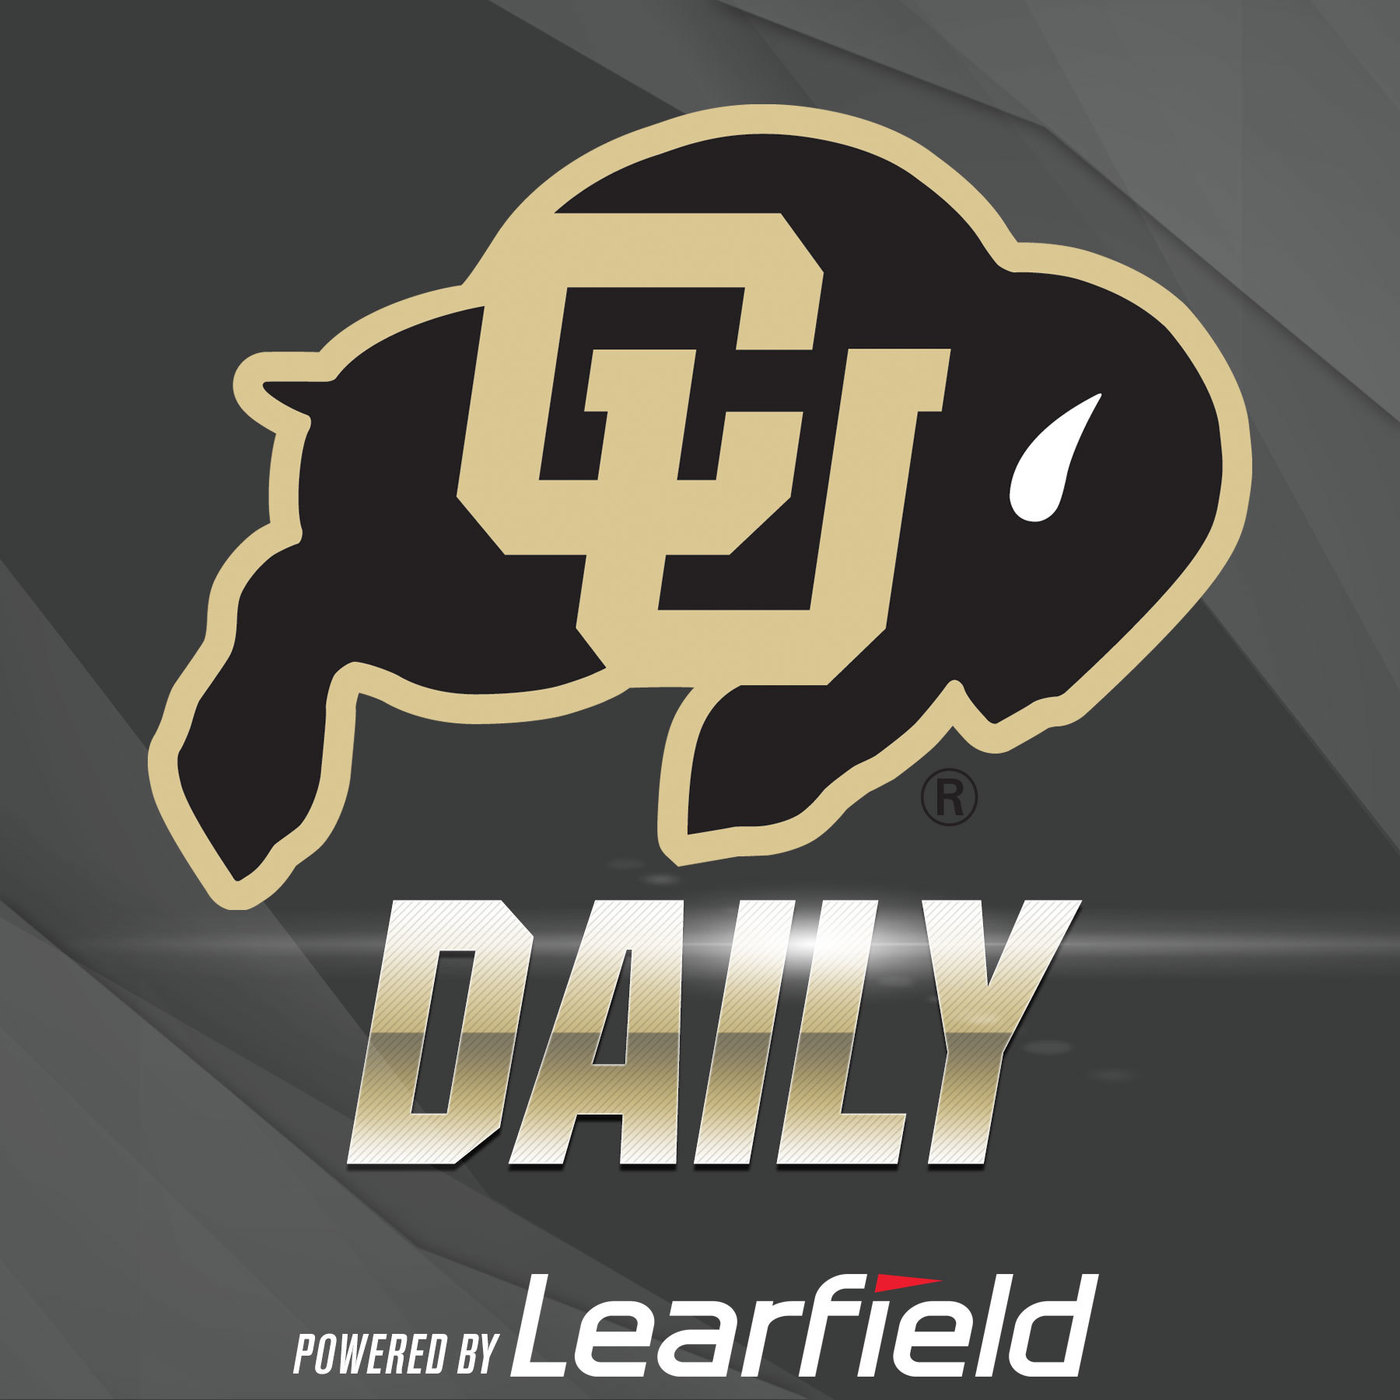 Buffs Daily with Voice of the Buffs, Mark Johnson, for Thursday November 15th